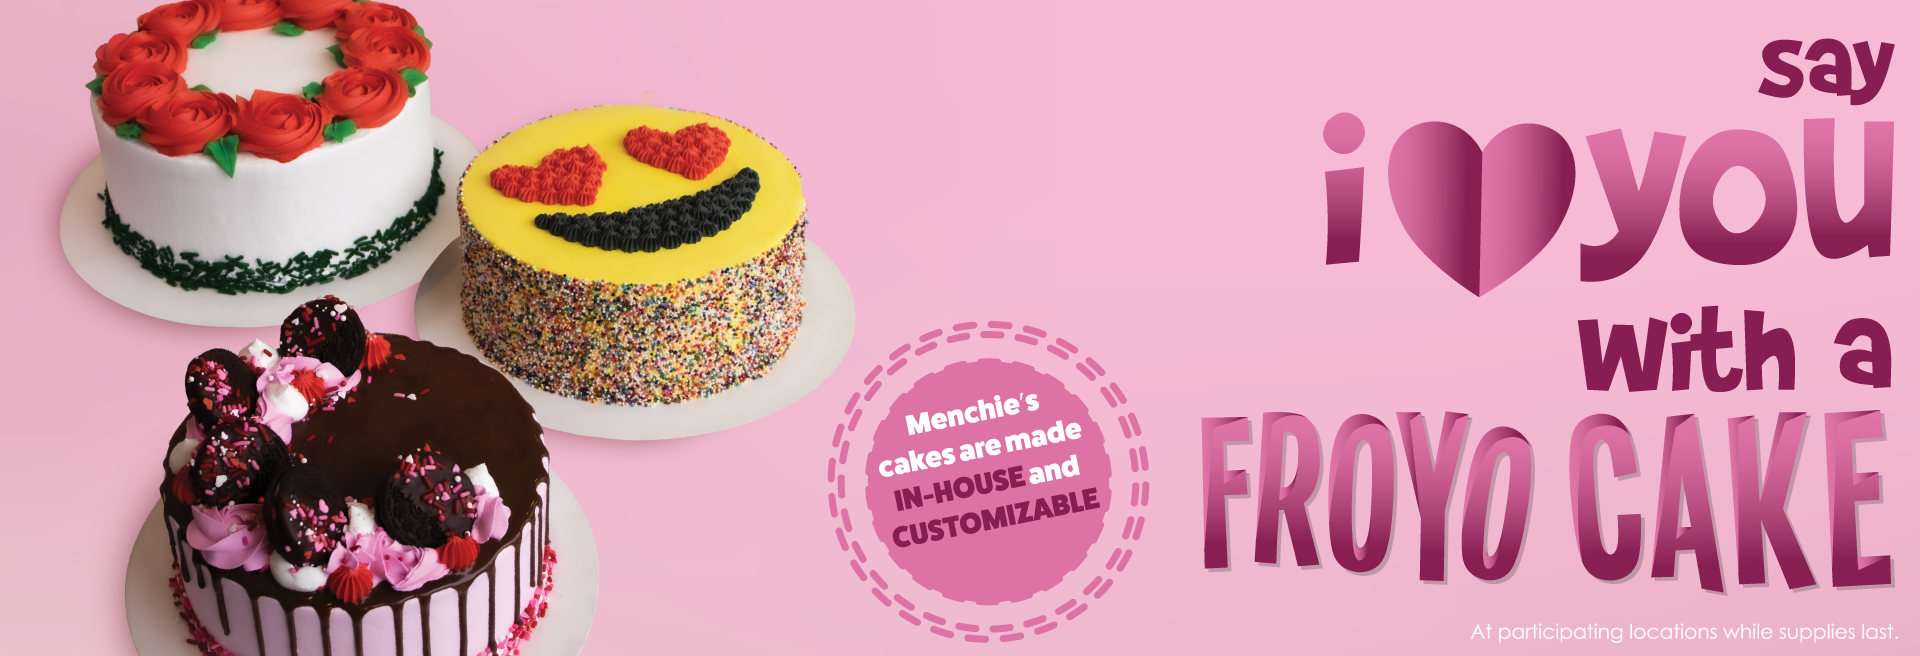 Experience love at first bite with one of our special Valentine Day's froyo cakes. We have a variety of cakes to choose from to ensure your Valentine feels special.